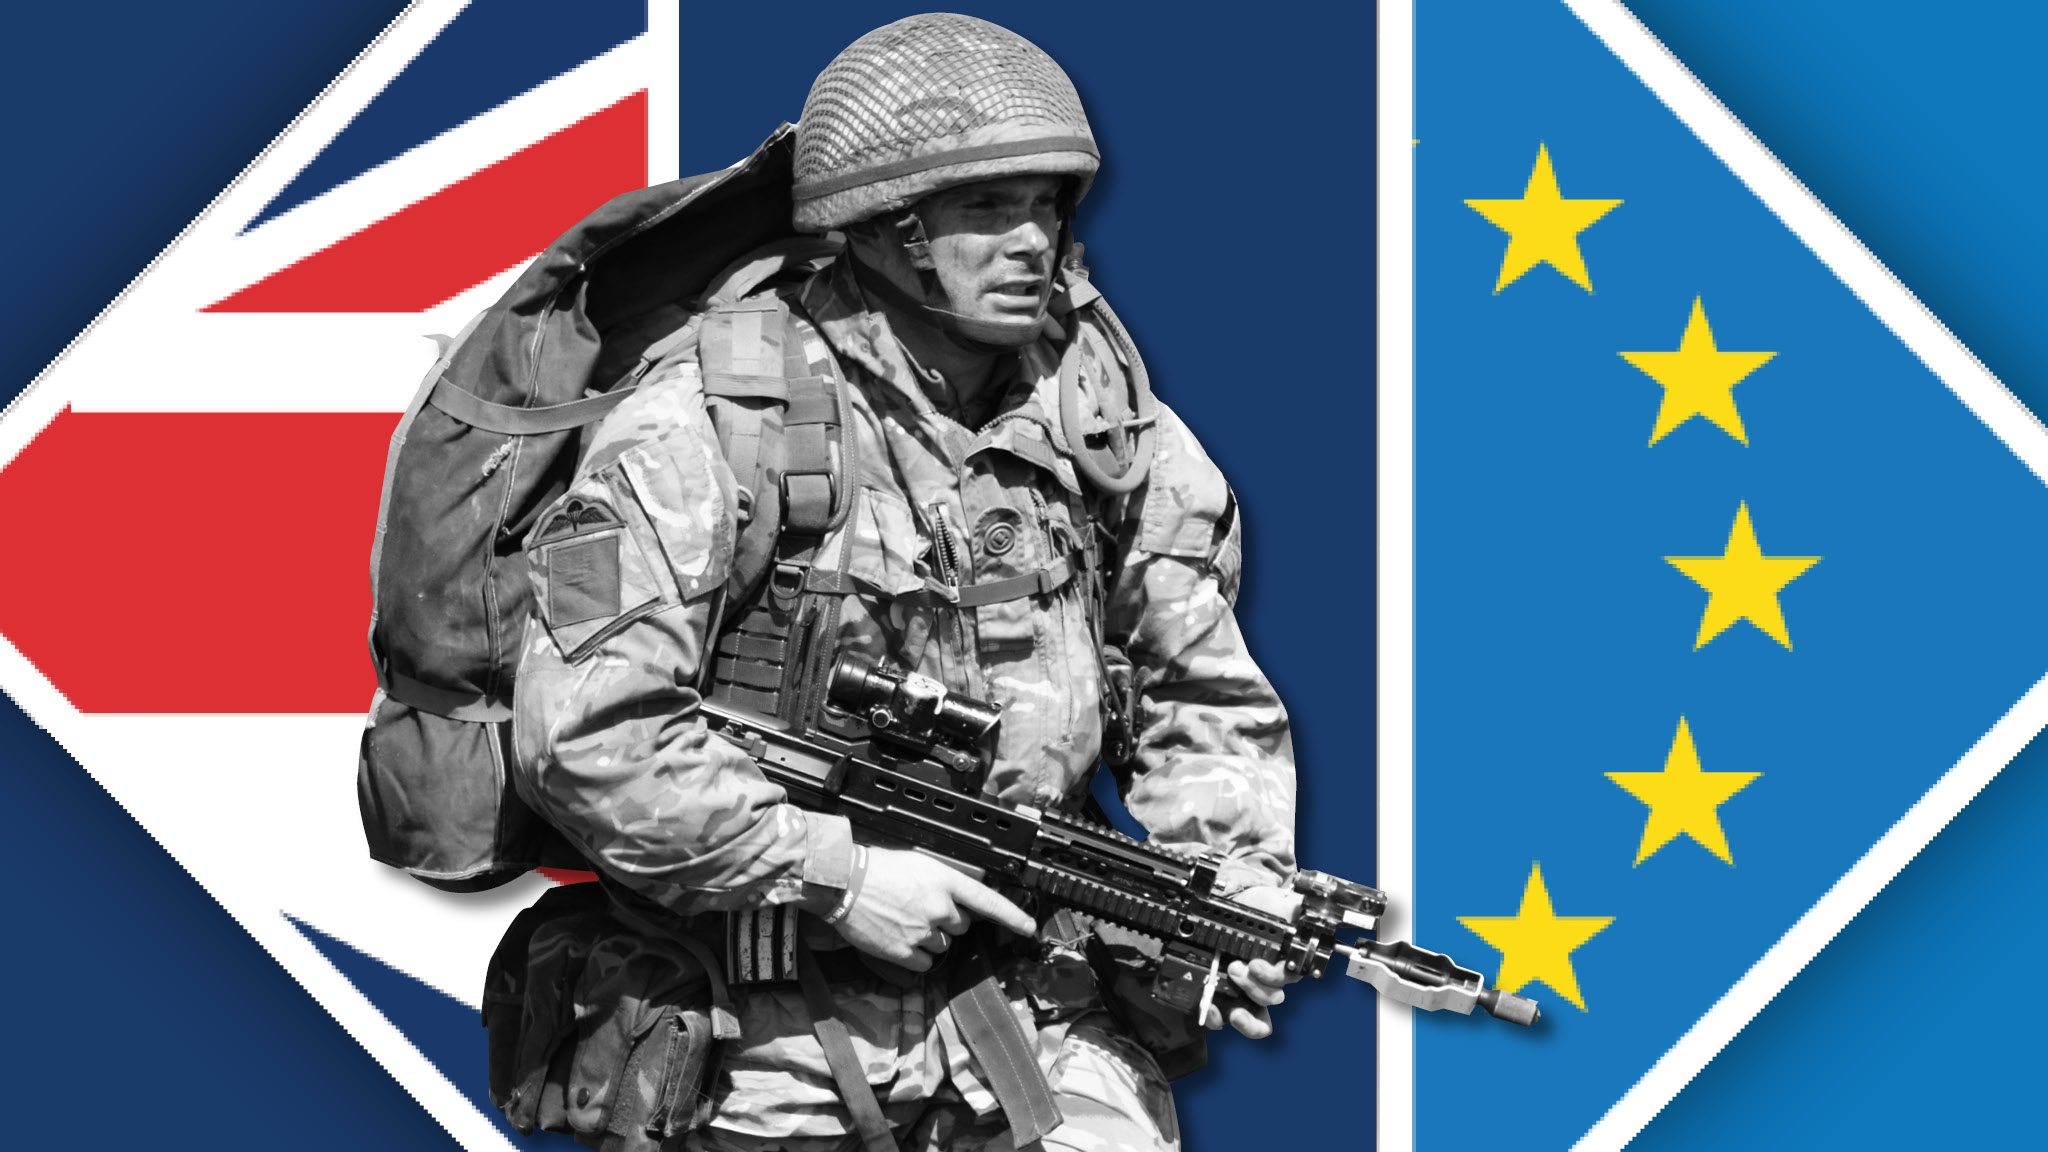 EU and UK seek speedy Brexit deal on defence and security